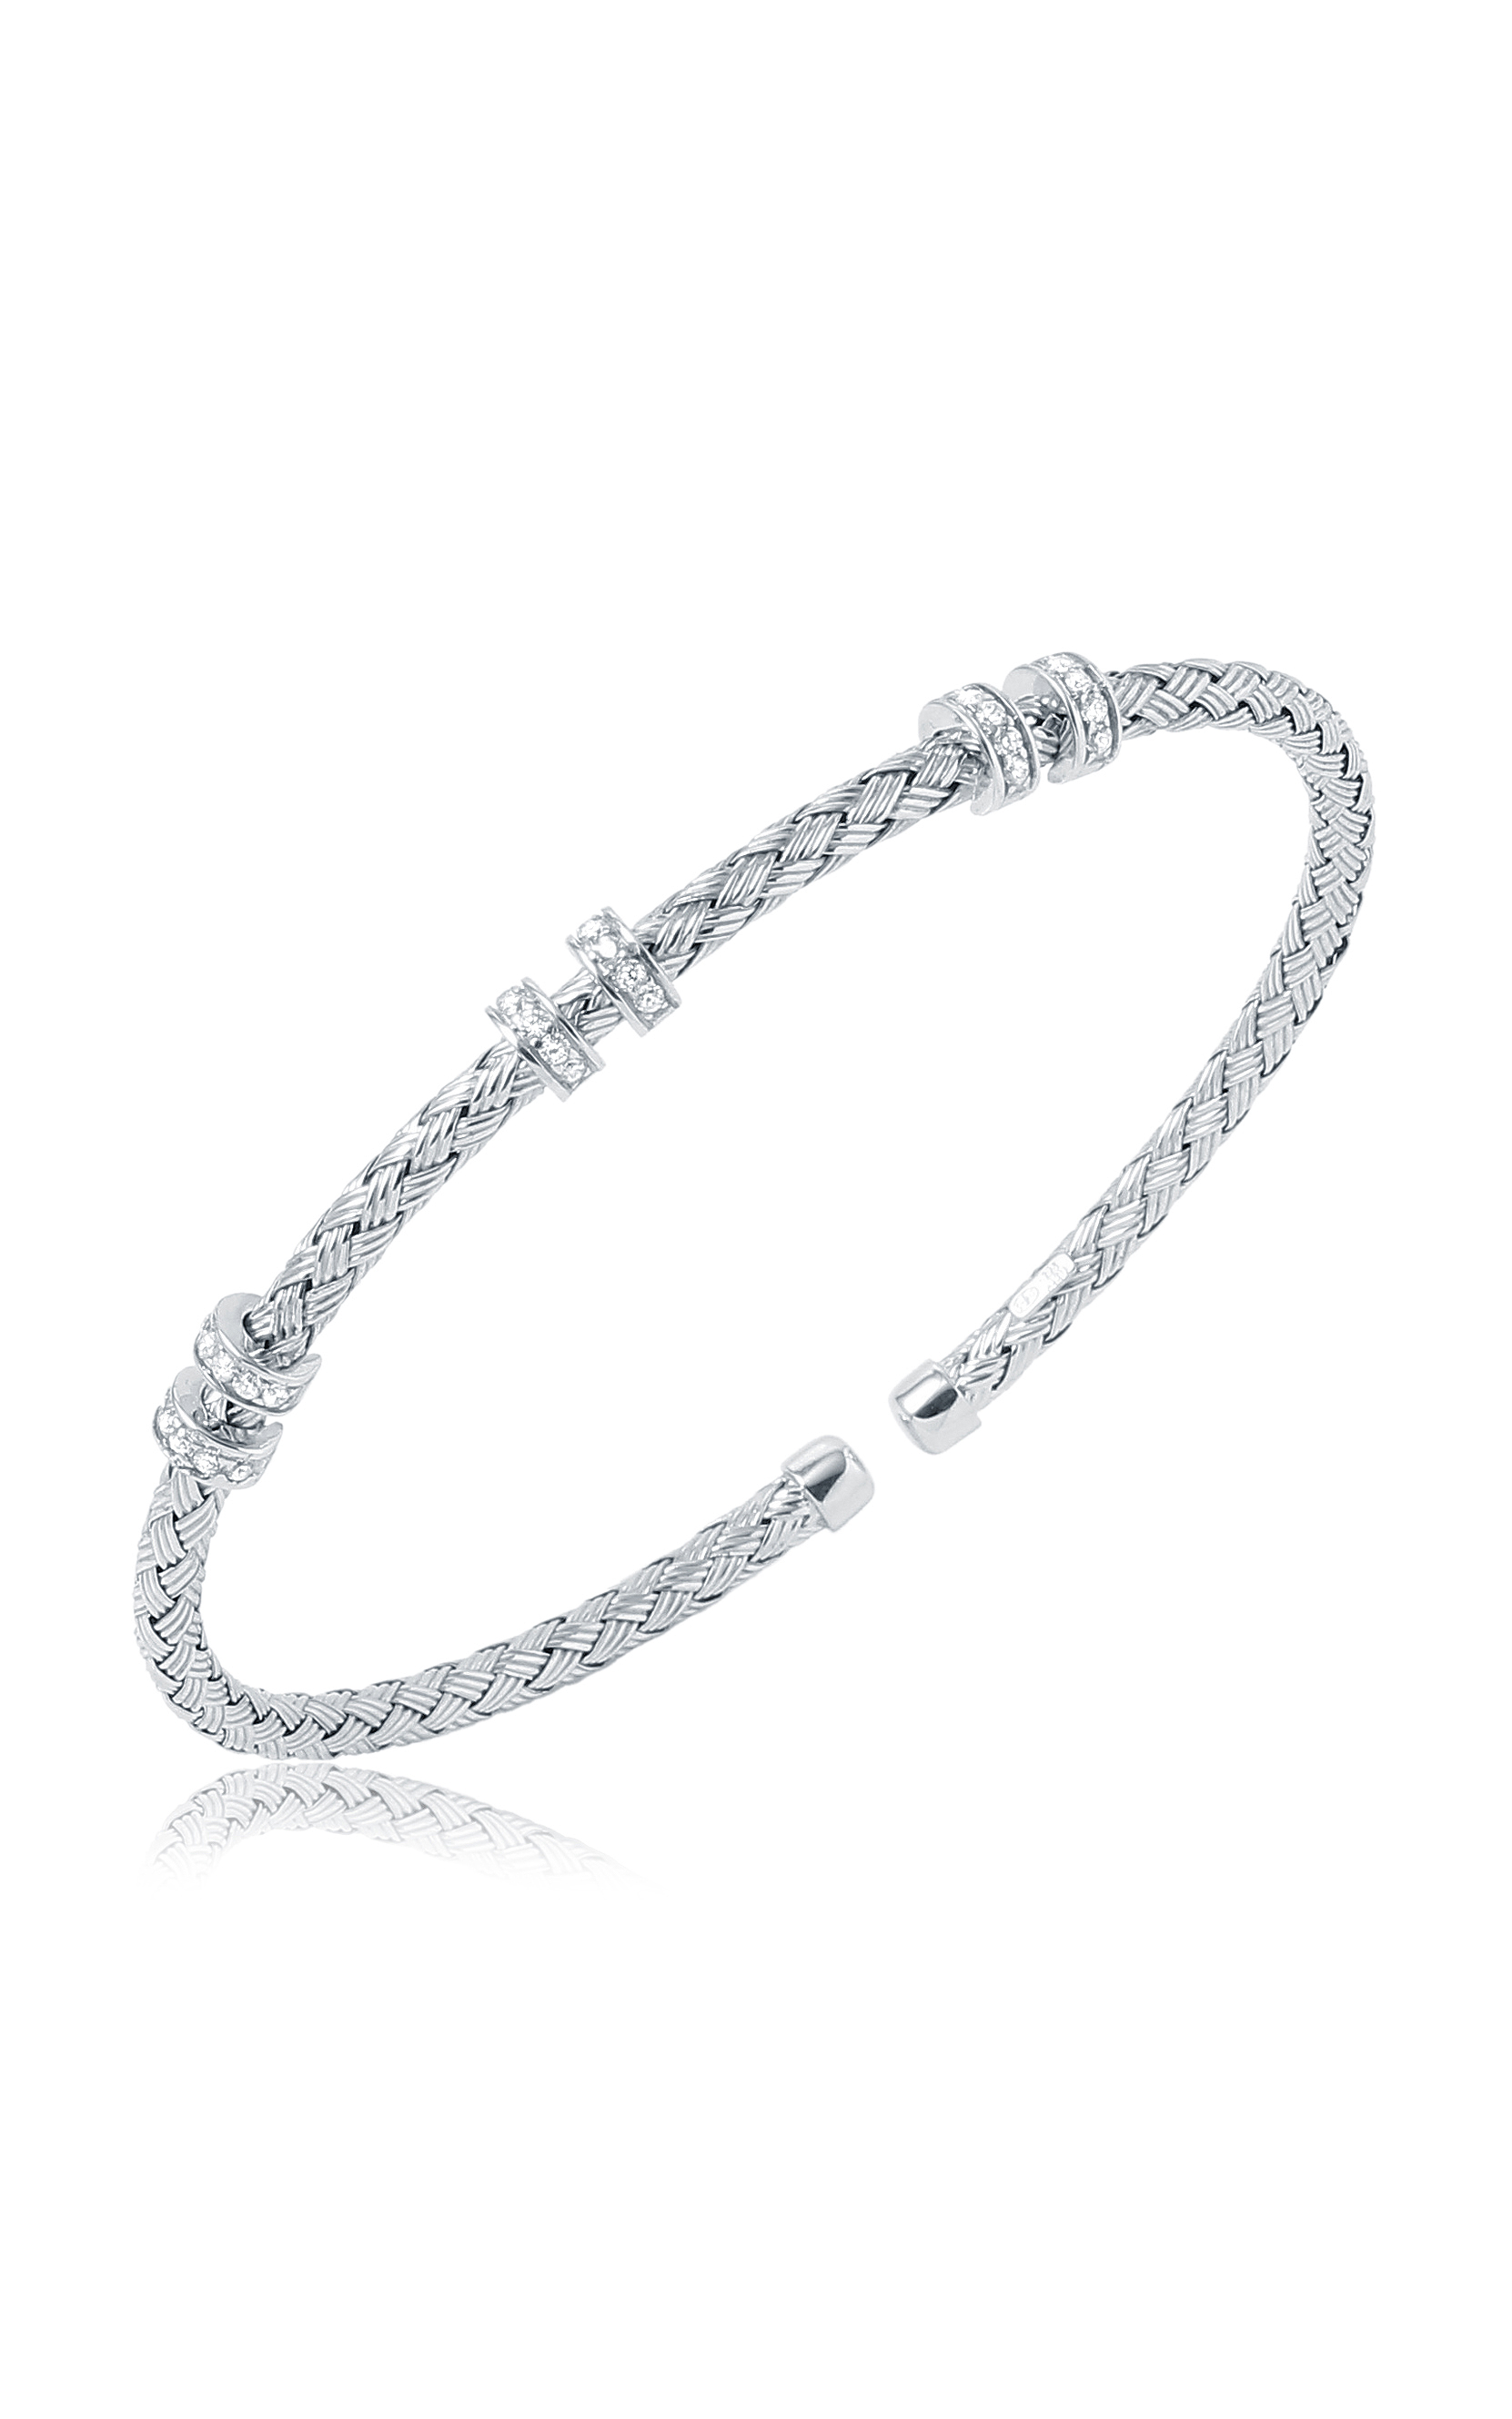 Charles Garnier Bracelets Bracelet Paolo Collection MLC8143WZ product image